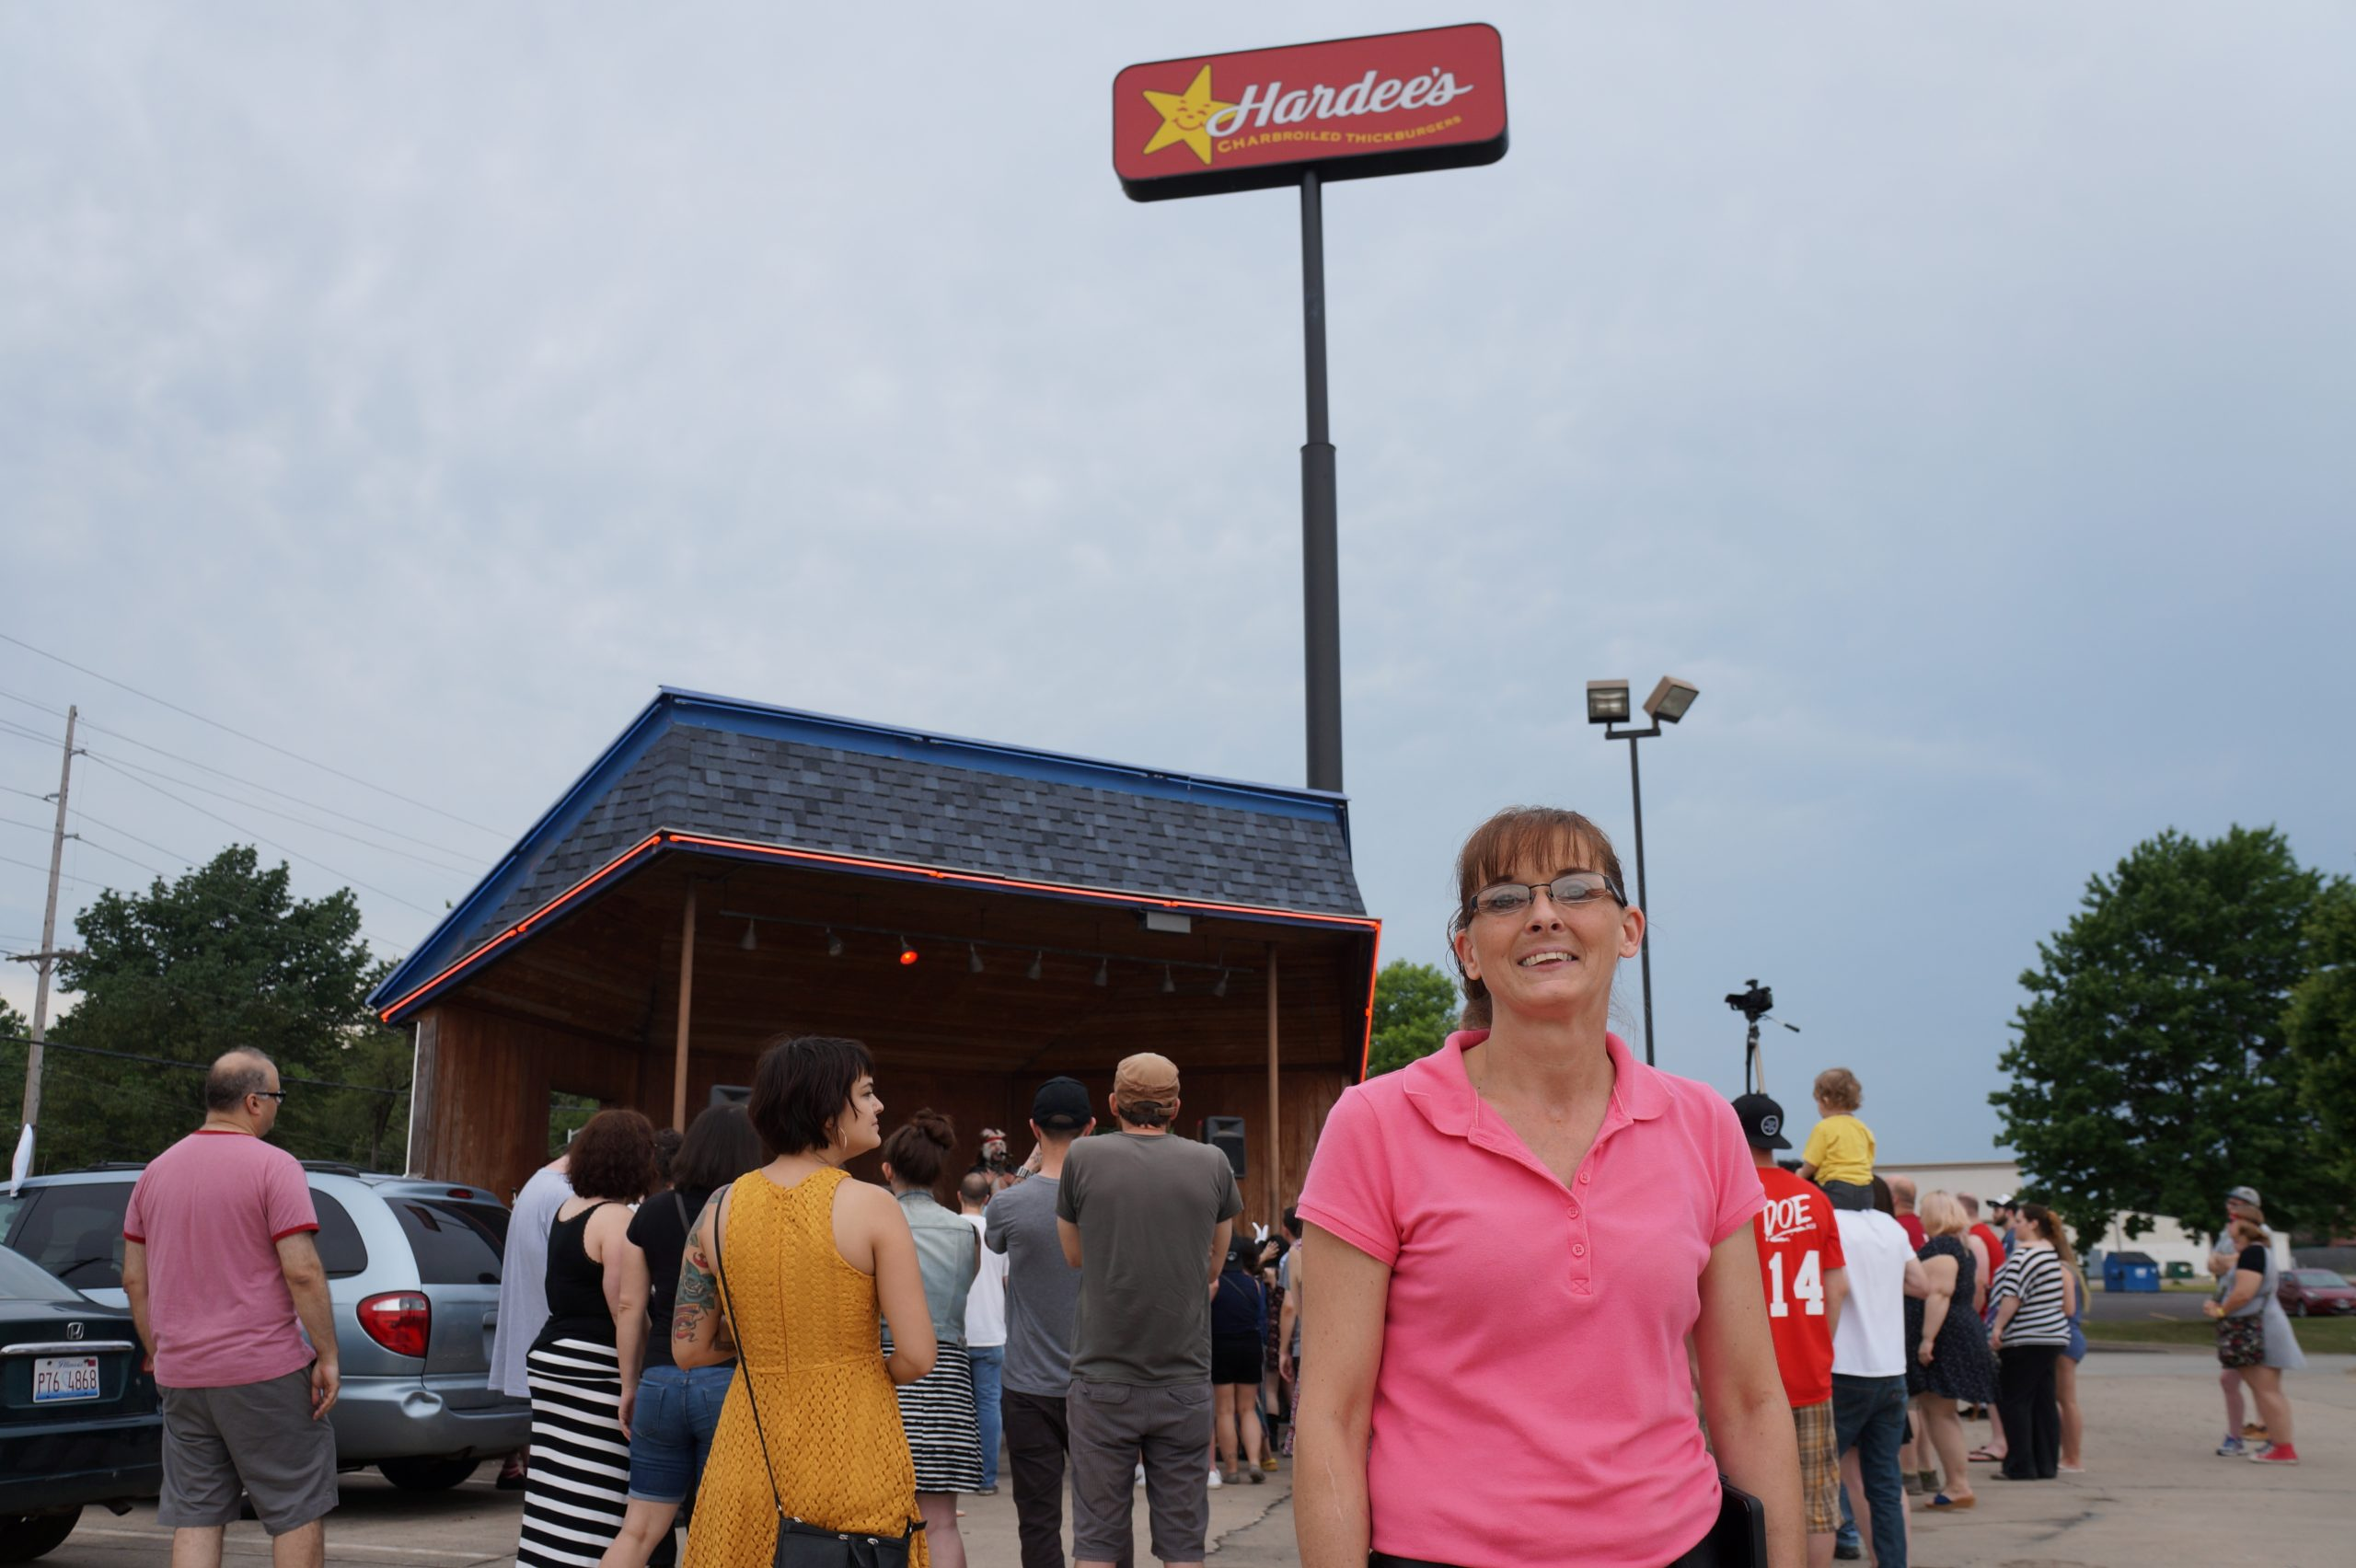 Denice Hubbs, manager of Rock 'n' Roll Hardee's, in front of the Dumb Fest crowd and the restaurant's outdoor stage